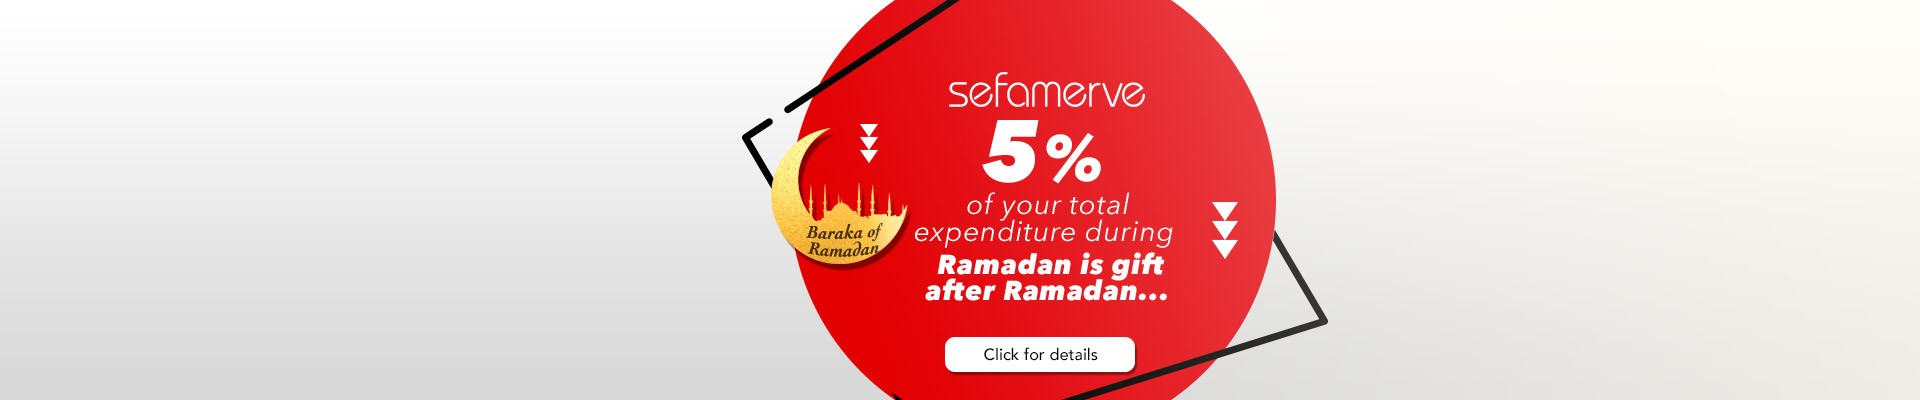 5% of your total expenditure during Ramadan is gift after Ramada